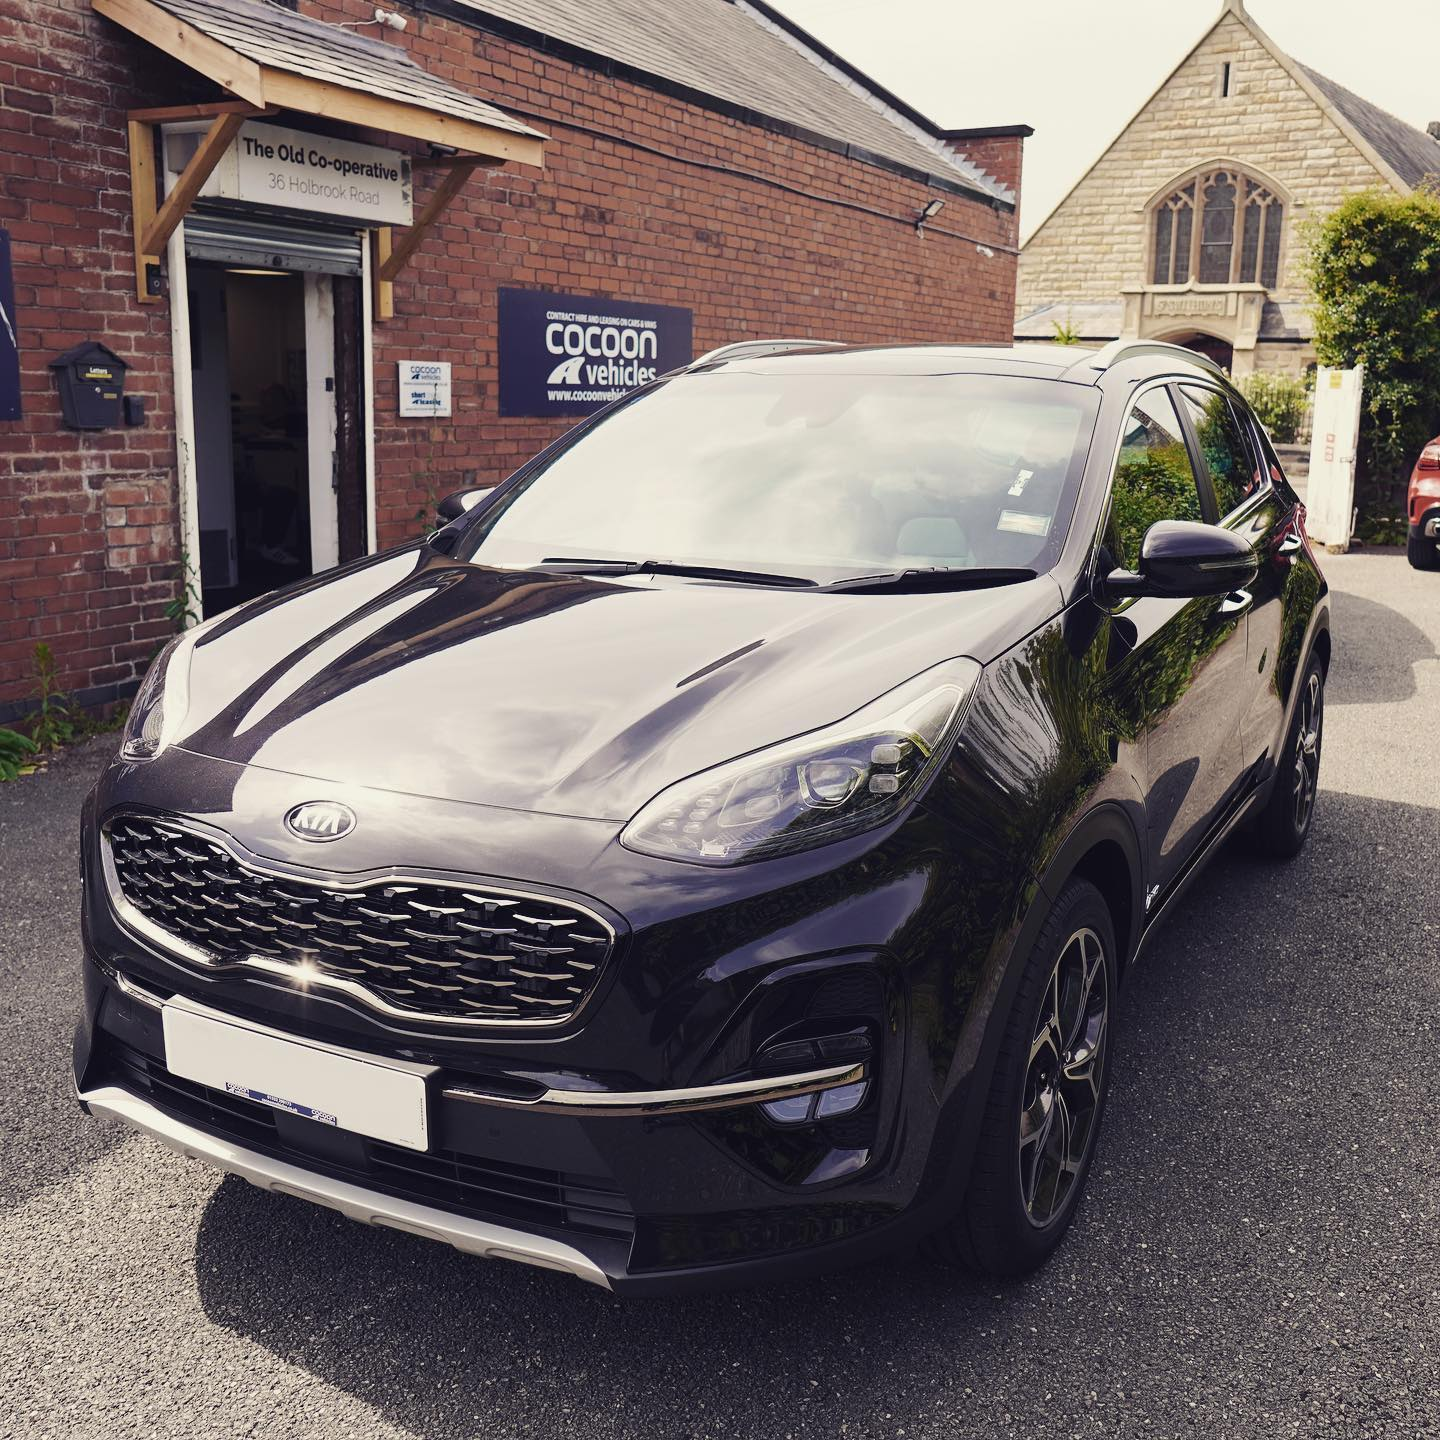 As promised, photos of the @kiamotorsuk Sportage that went out to Wales on a 6 month car lease.